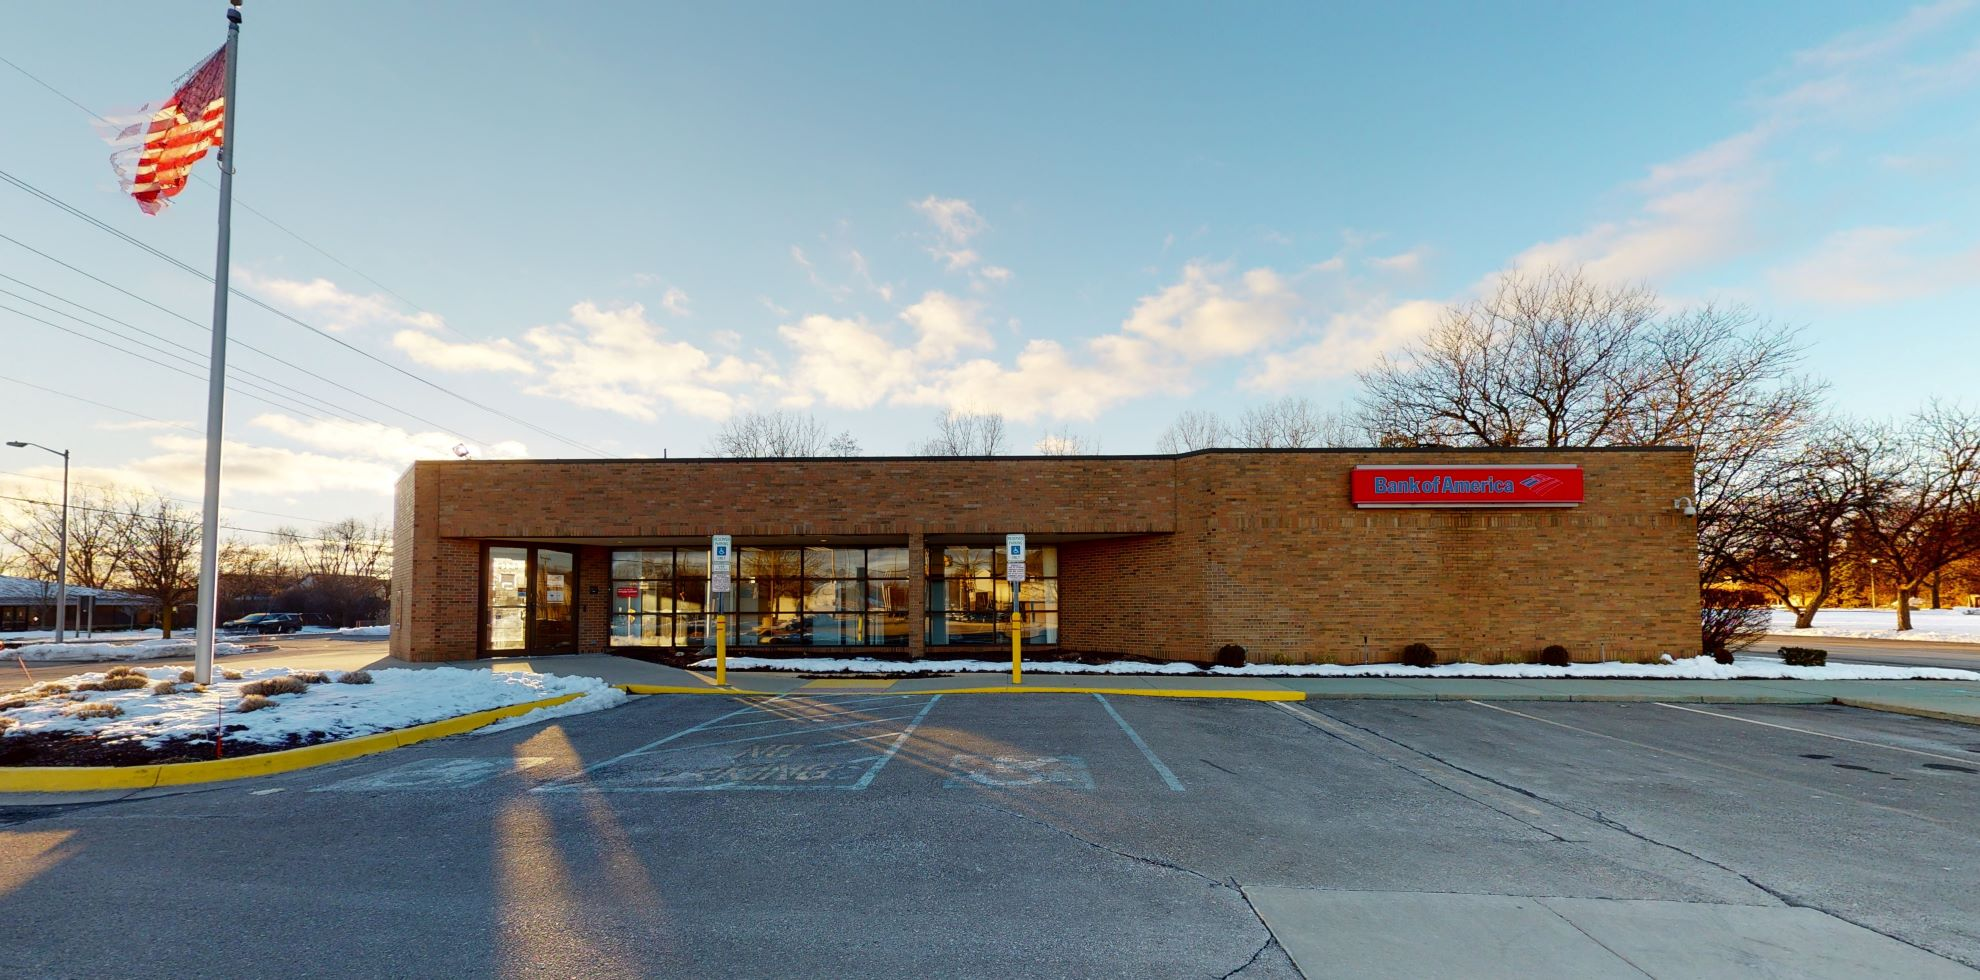 Bank of America financial center with drive-thru ATM   6120 W Maple Rd, West Bloomfield, MI 48322